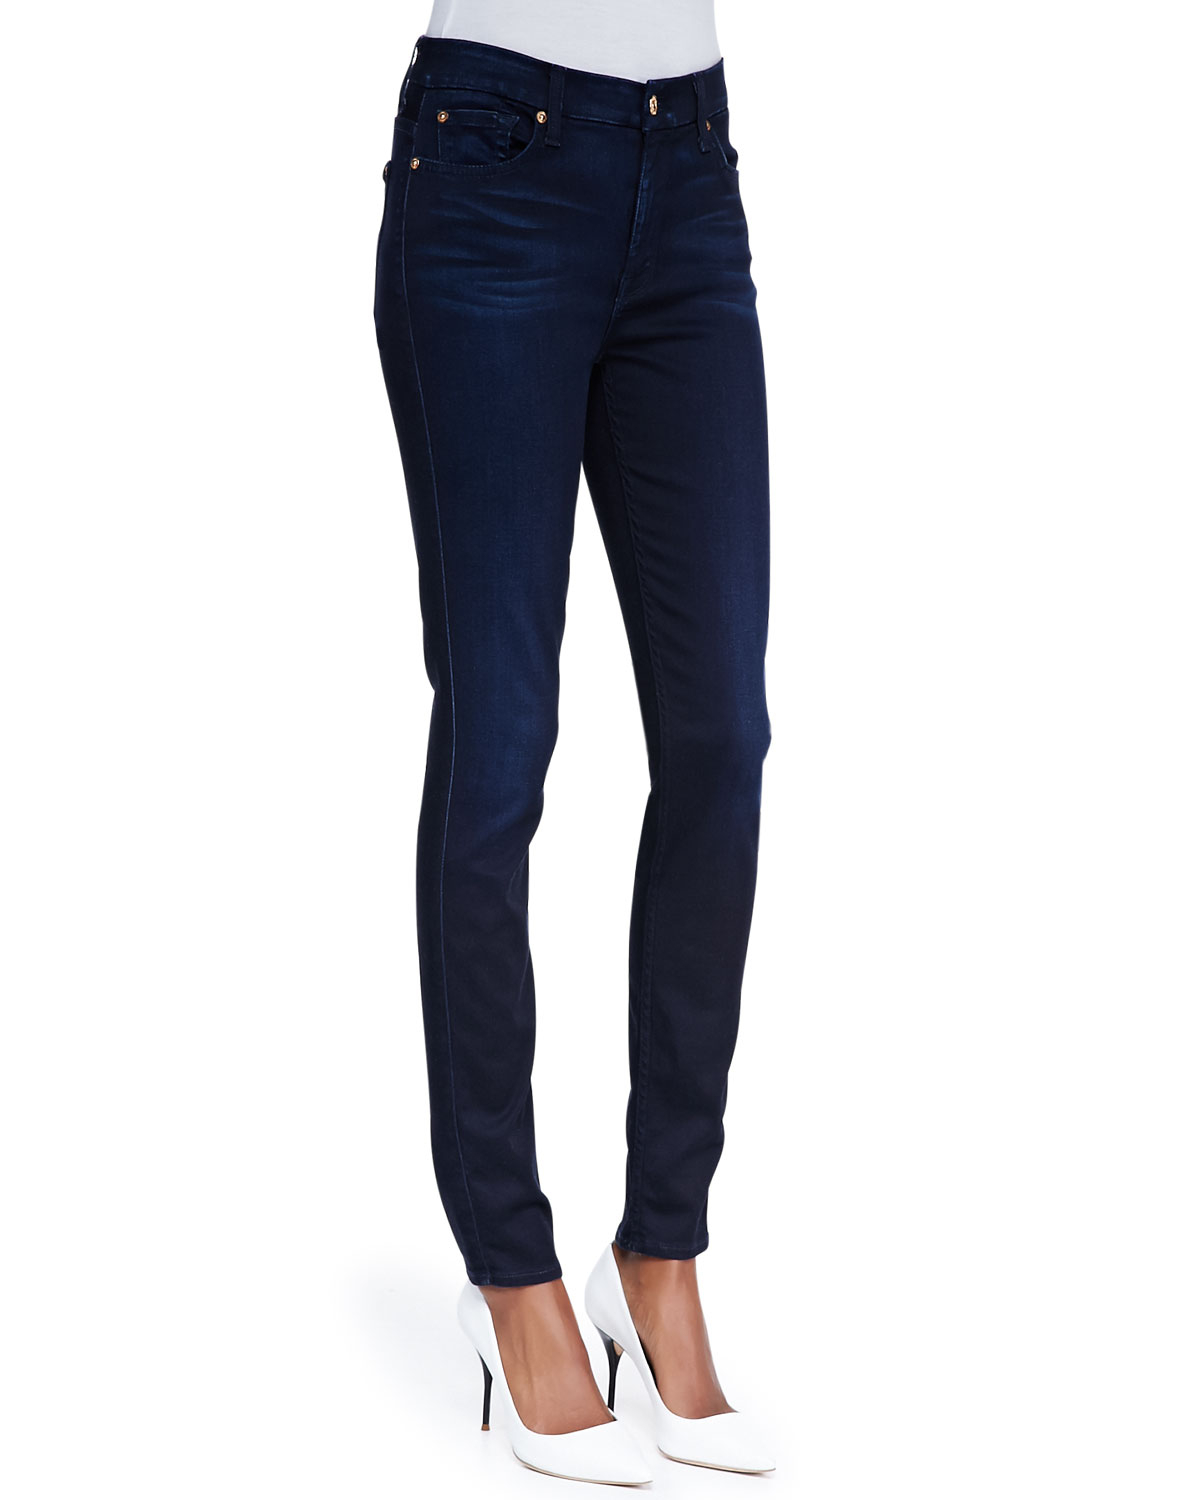 7 for all mankind high waist skinny jeans in blue blue black sateen lyst. Black Bedroom Furniture Sets. Home Design Ideas